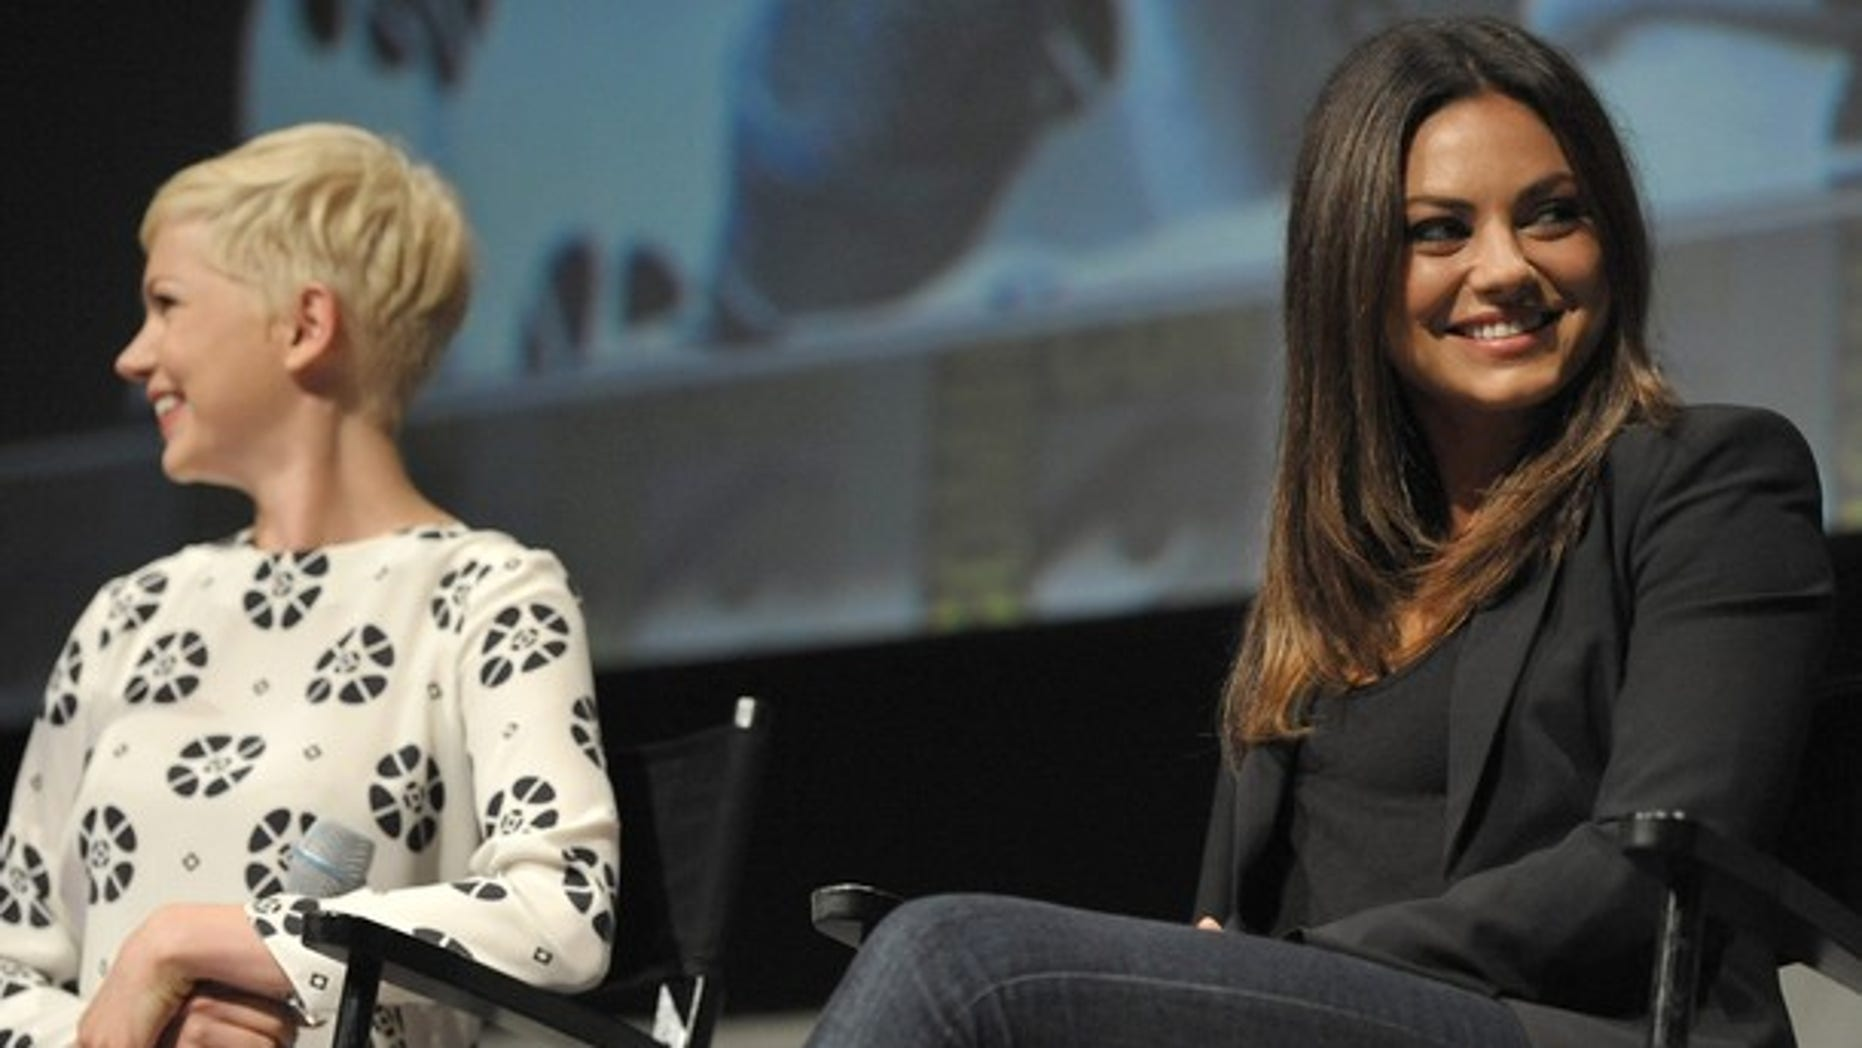 """Michelle Williams and Mila Kunis attend Disney's """"Oz: The Great and Powerful"""" panel at Comic-Con on Thursday, July 12, 2012 in San Diego, Calif. (Photo by John Shearer/Invision/AP)"""